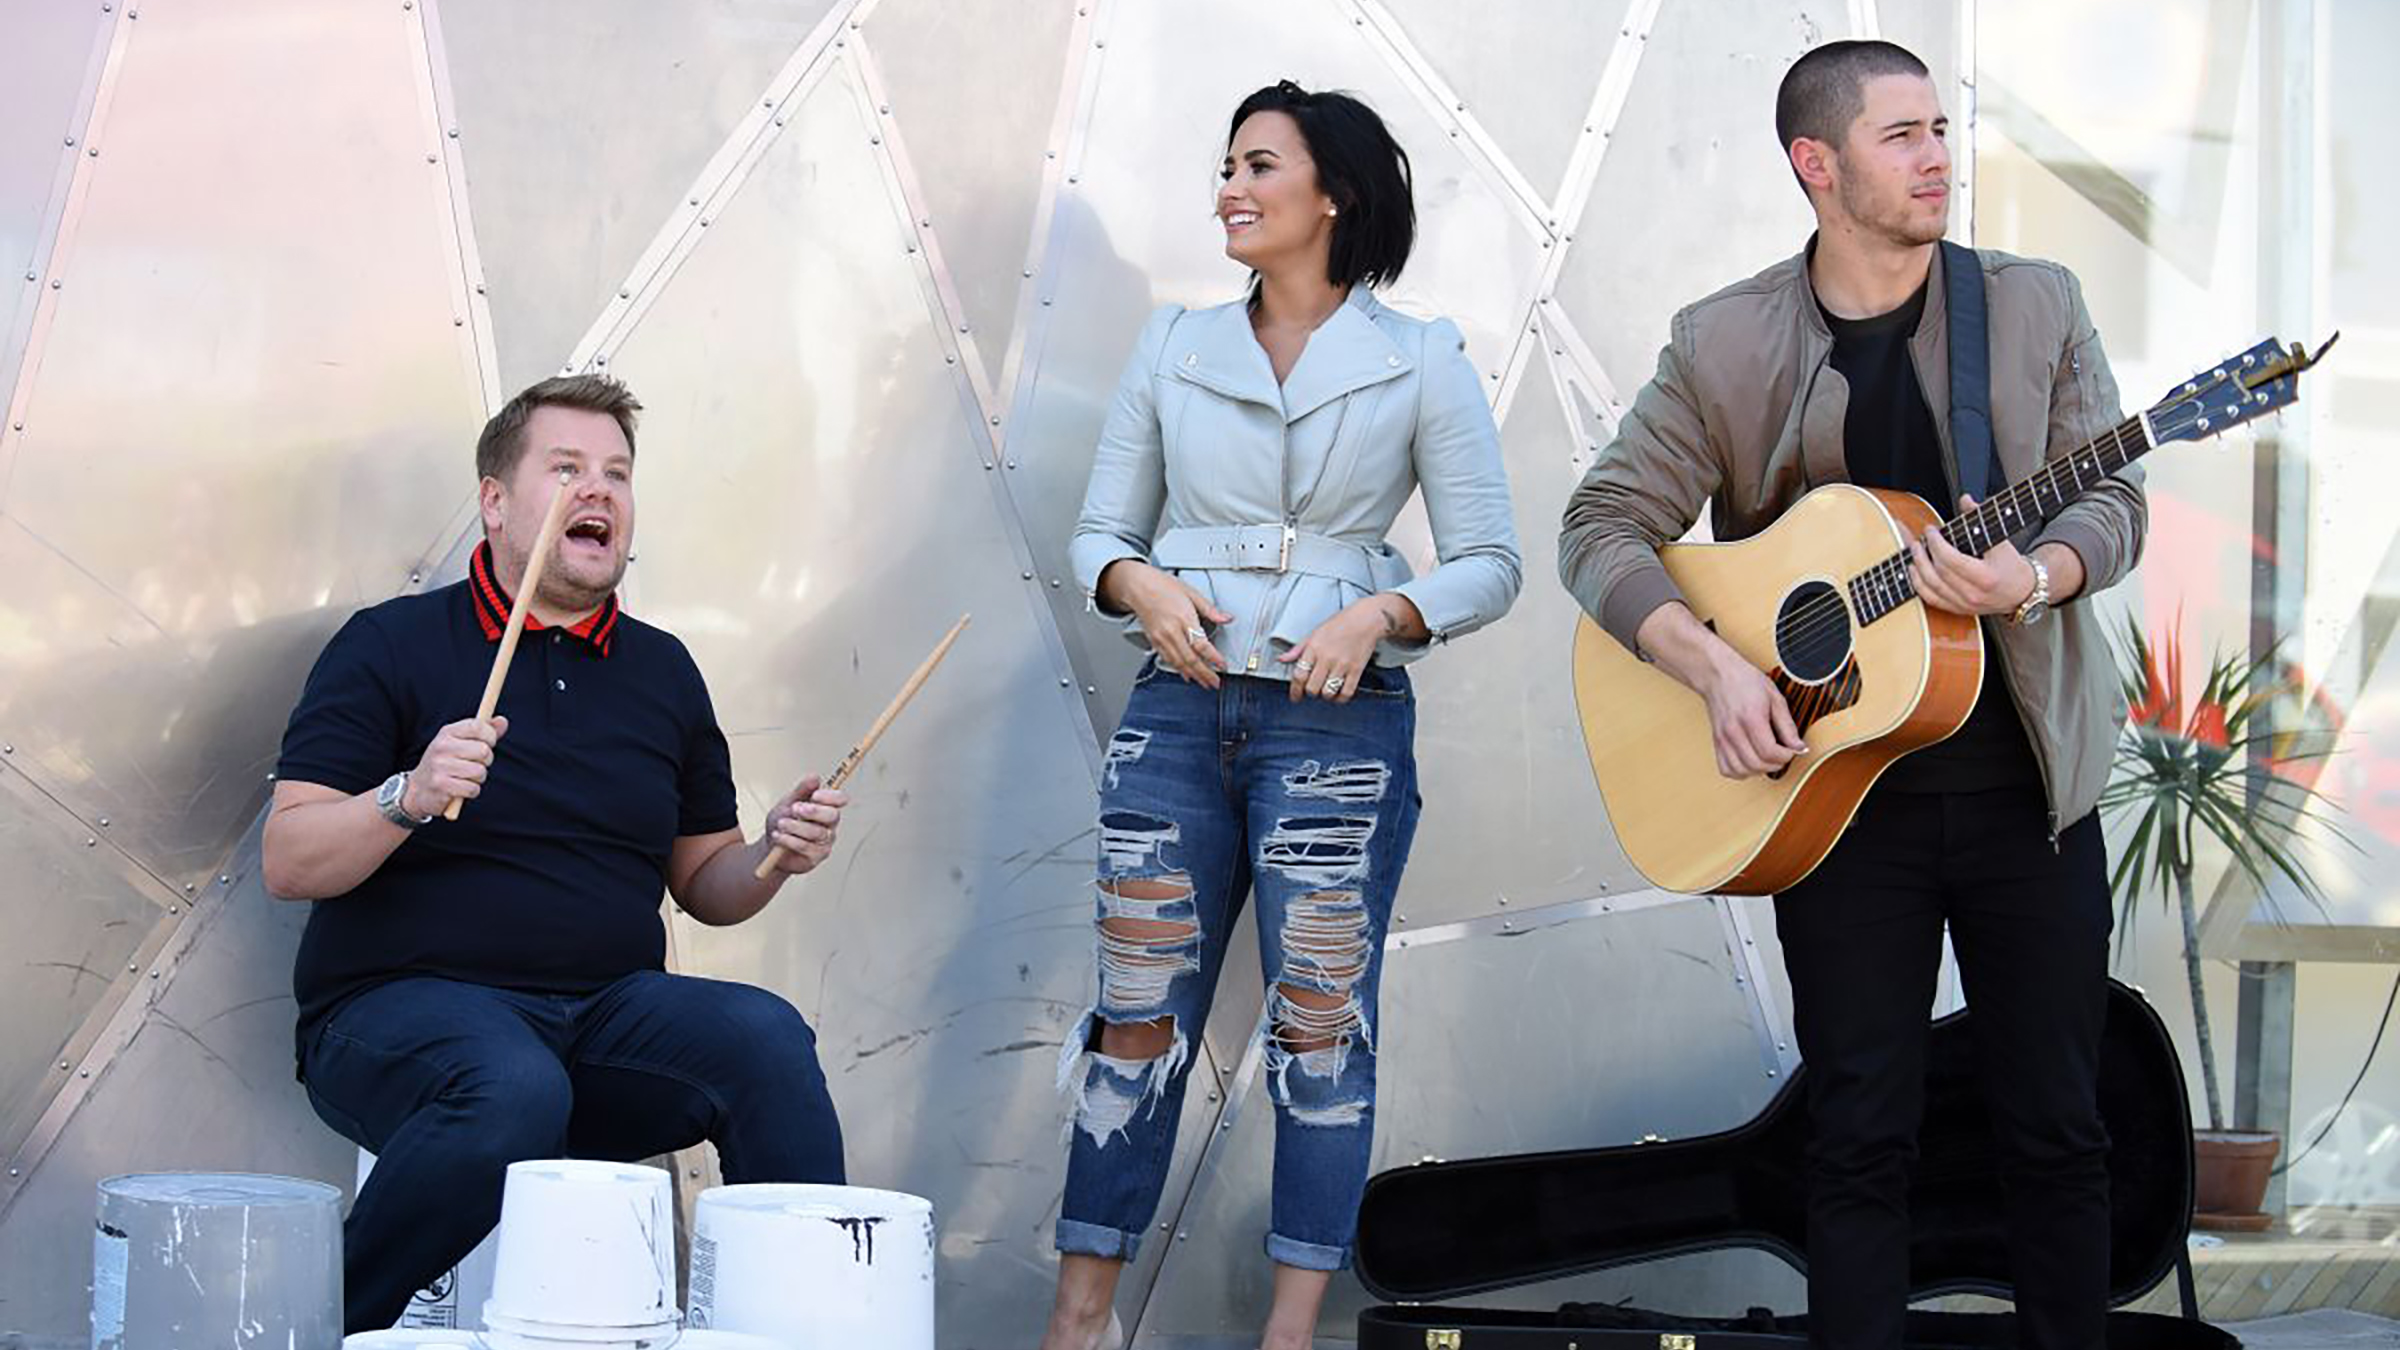 160517 demi lovato films carpool karaoke with nick jonas and james corden in los angeles home